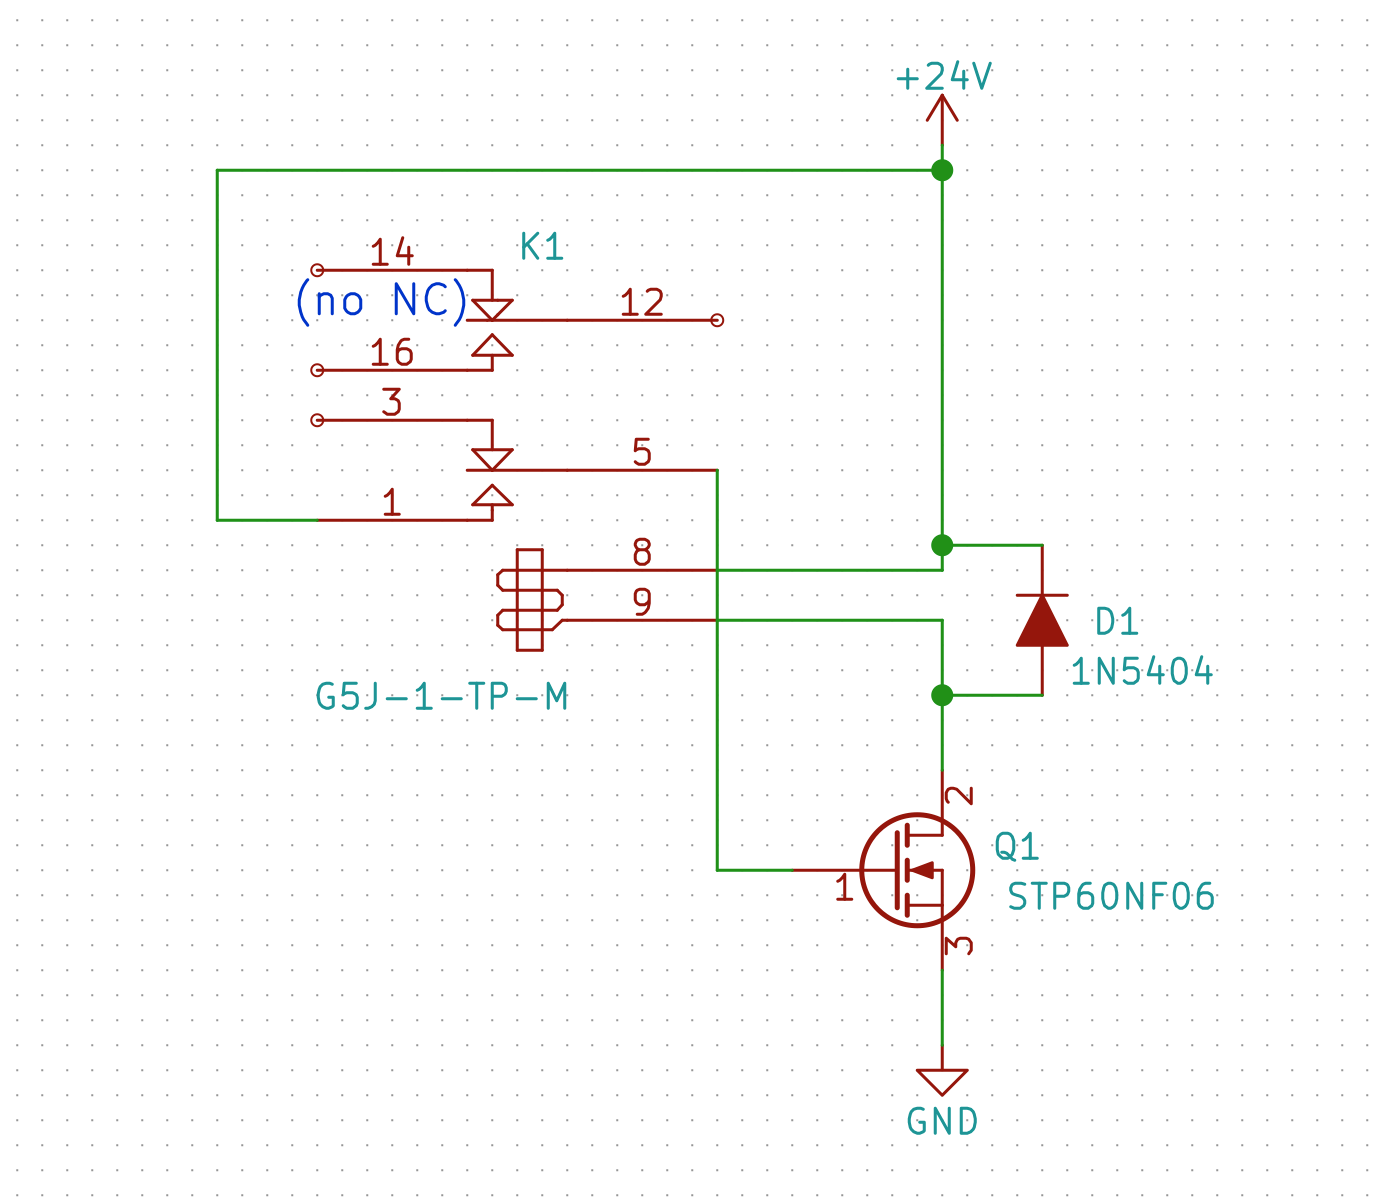 High Voltage Ac Generation Using Relays R X Seger Medium Solid State Relay Mosfet Connected In Parallel To A Coil I Used 1n5404 Diode Had Available Rated For 100 V Peak Reverse Datasheet Towards The Positive